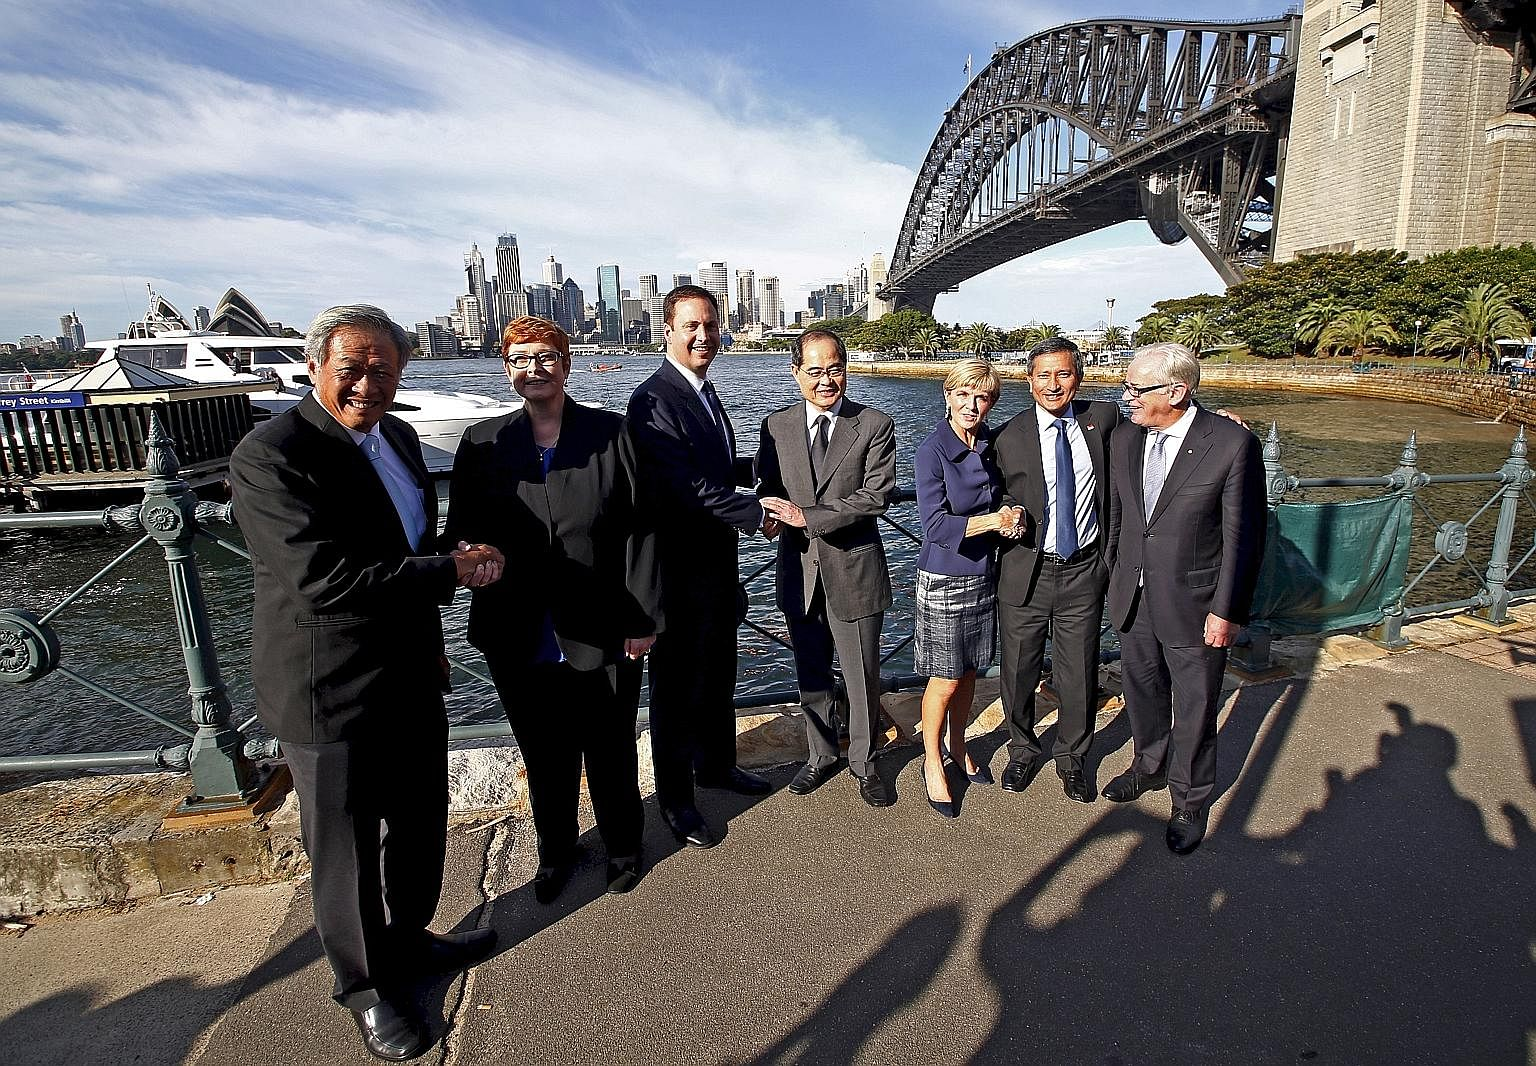 (From far left) Singapore Defence Minister Ng Eng Hen, Australian Defence Minister Marise Payne, Australian Trade Minister Steven Ciobo, Singapore Trade and Industry Minister Lim Hng Kiang, Australian Foreign Minister Julie Bishop, Singapore Foreign